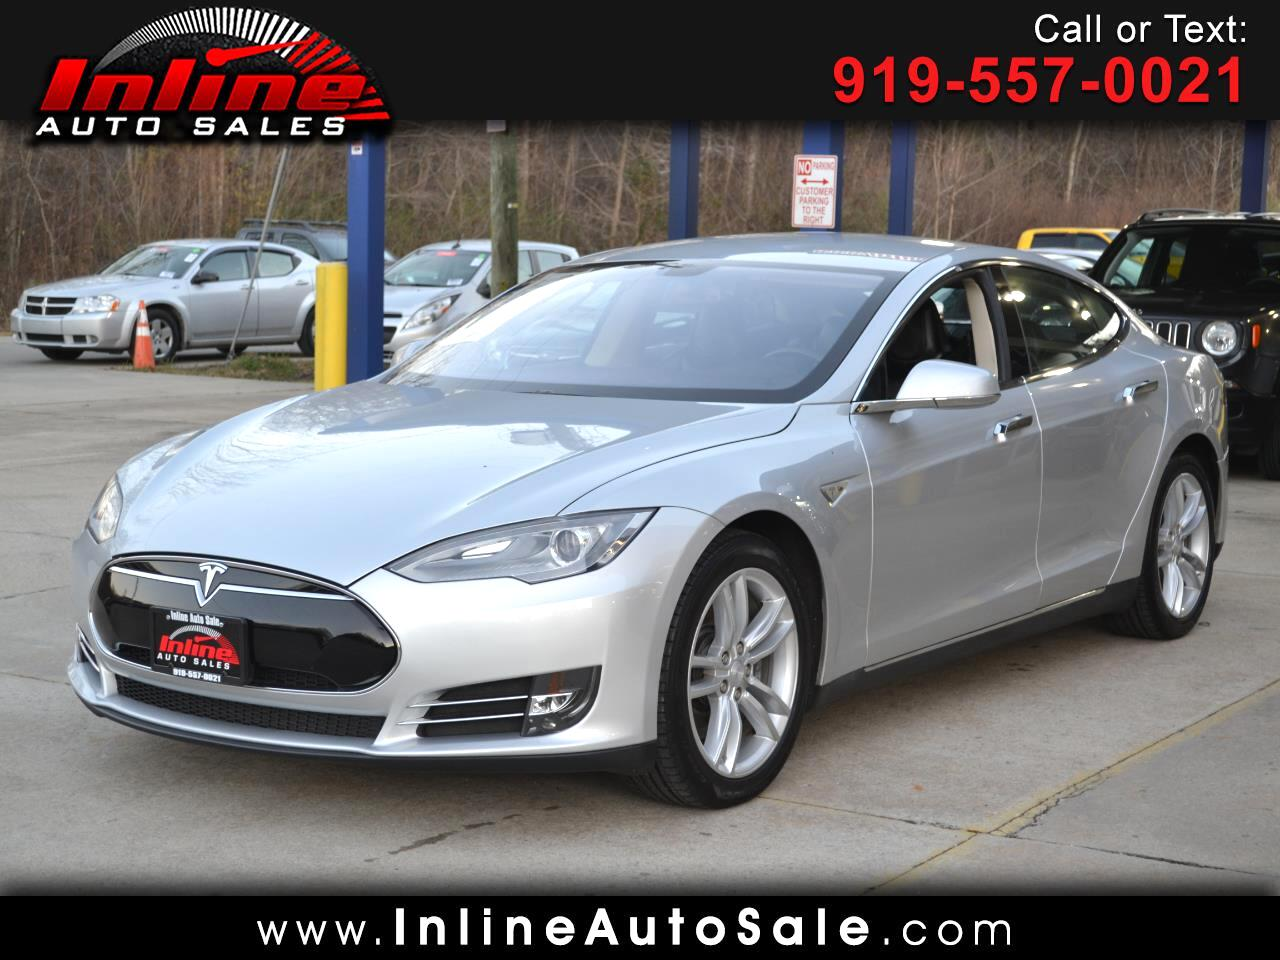 2013 Tesla Model S 4dr Sdn RWD 85 kWh Battery